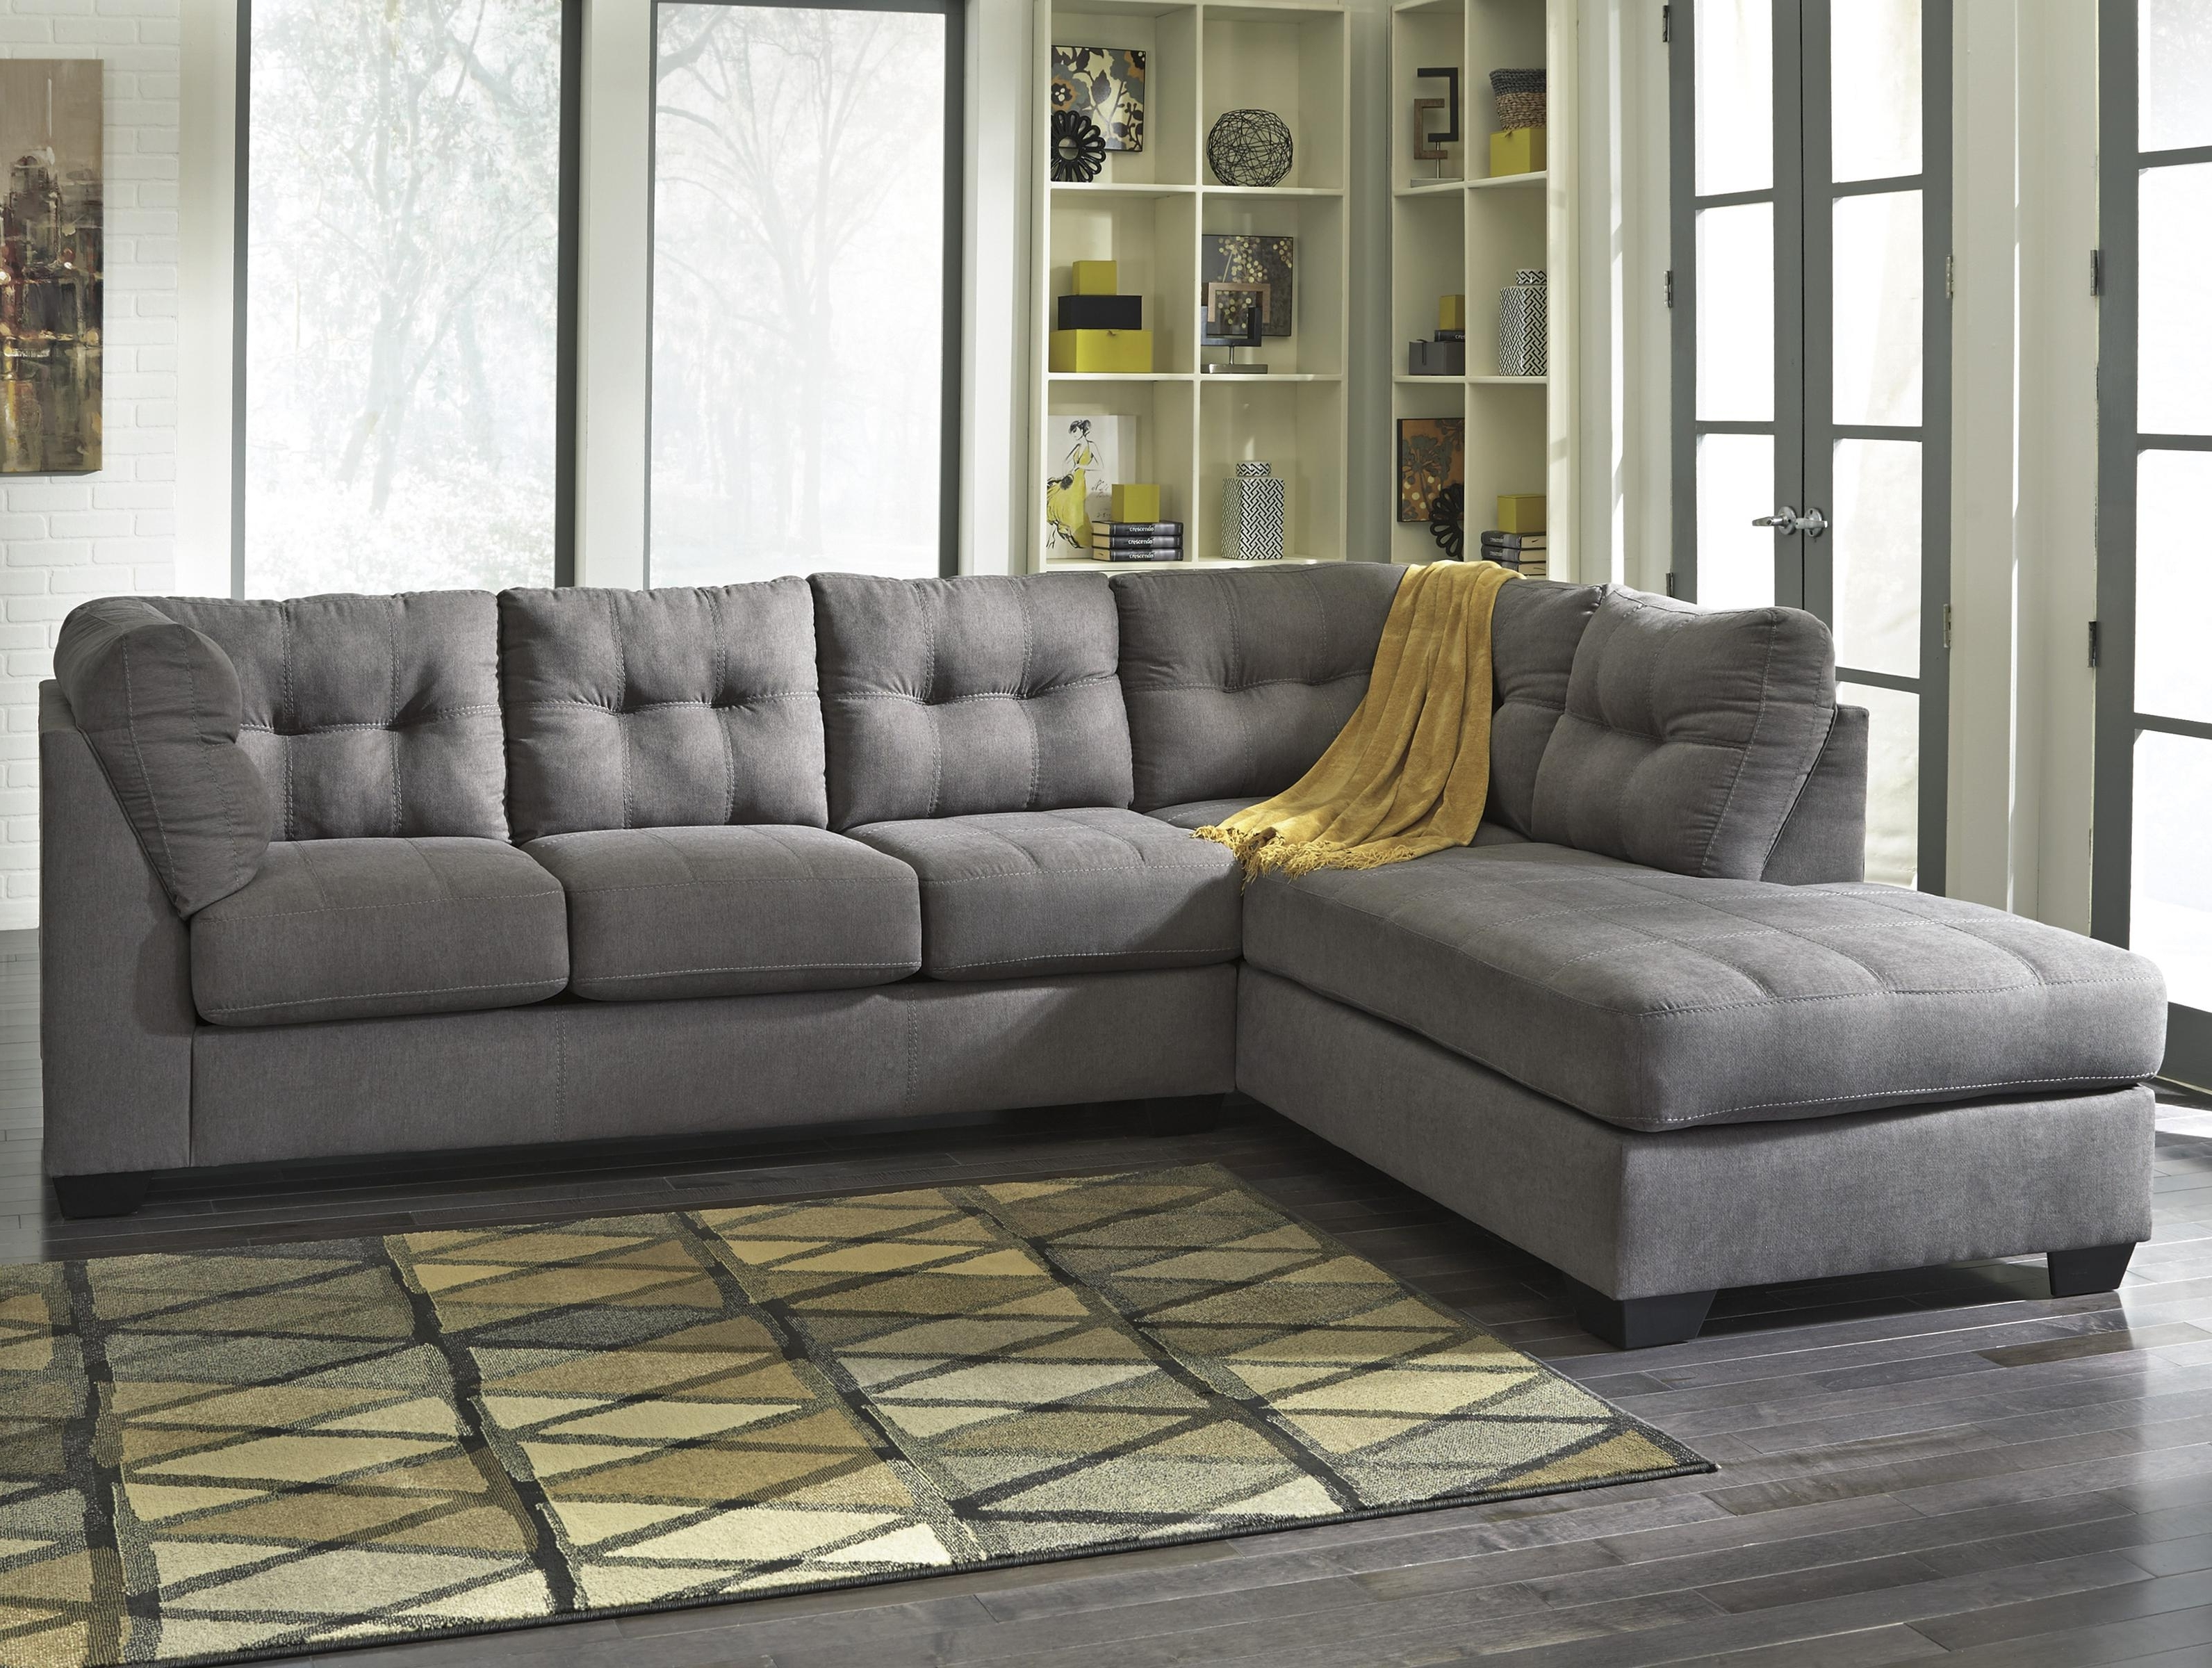 Best And Newest Benchcraft Maier – Charcoal 2 Piece Sectional With Left Chaise Within Sectional Sofas With 2 Chaises (View 4 of 20)